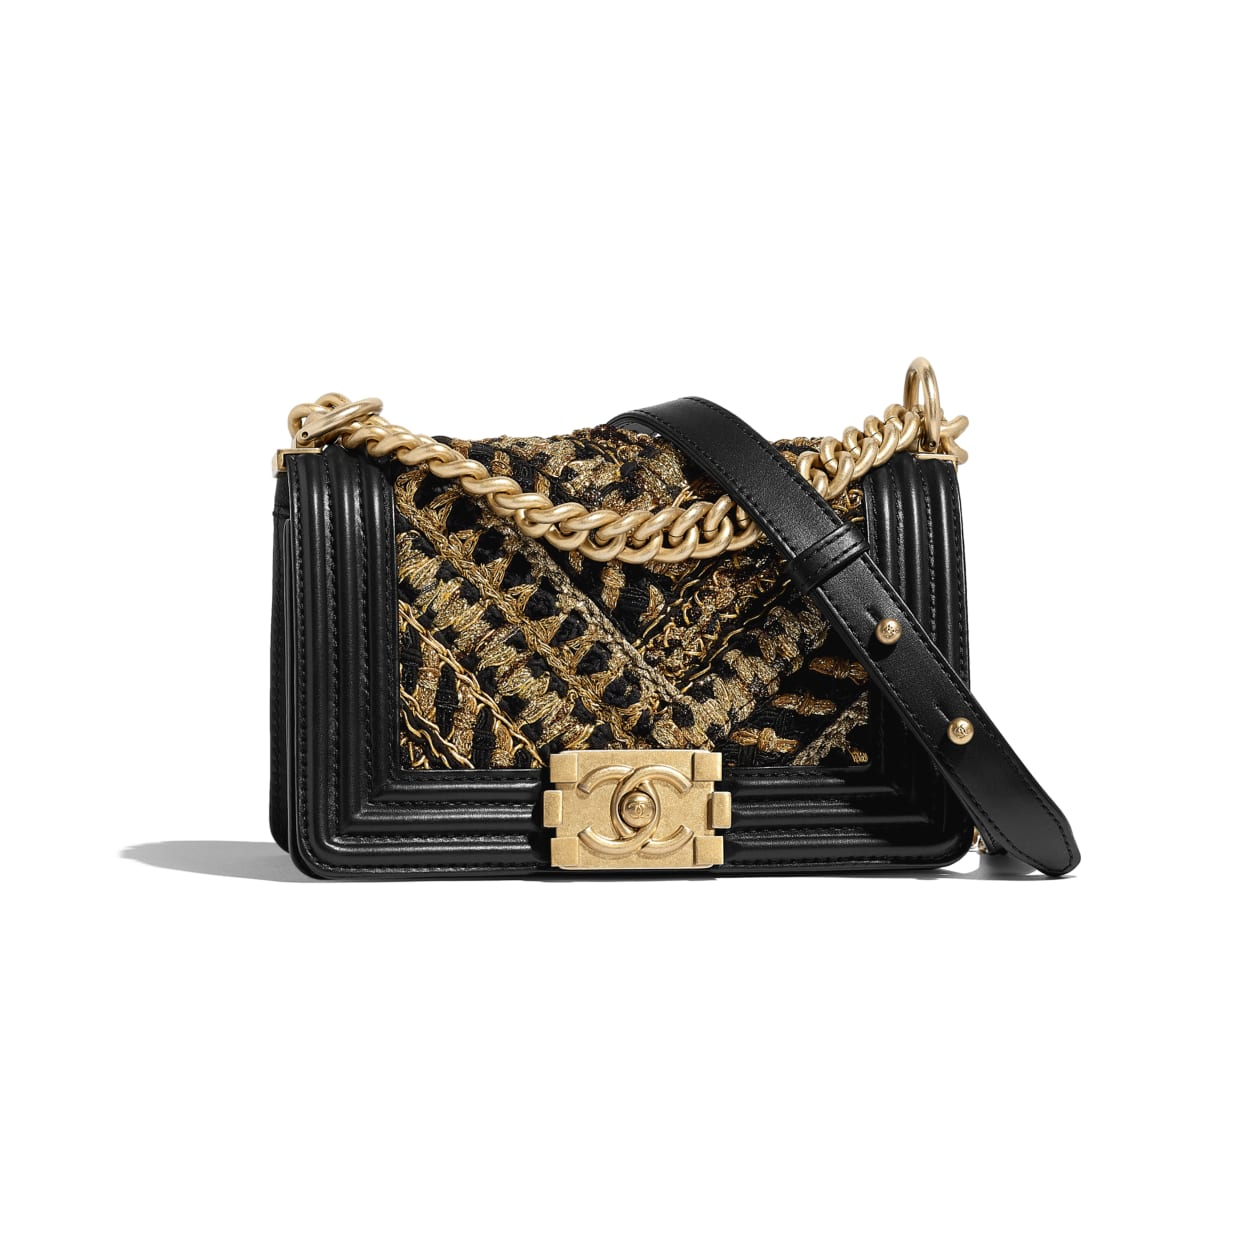 071d82c0fd1f8 Europe Chanel Bag Price List Reference Guide | Spotted Fashion